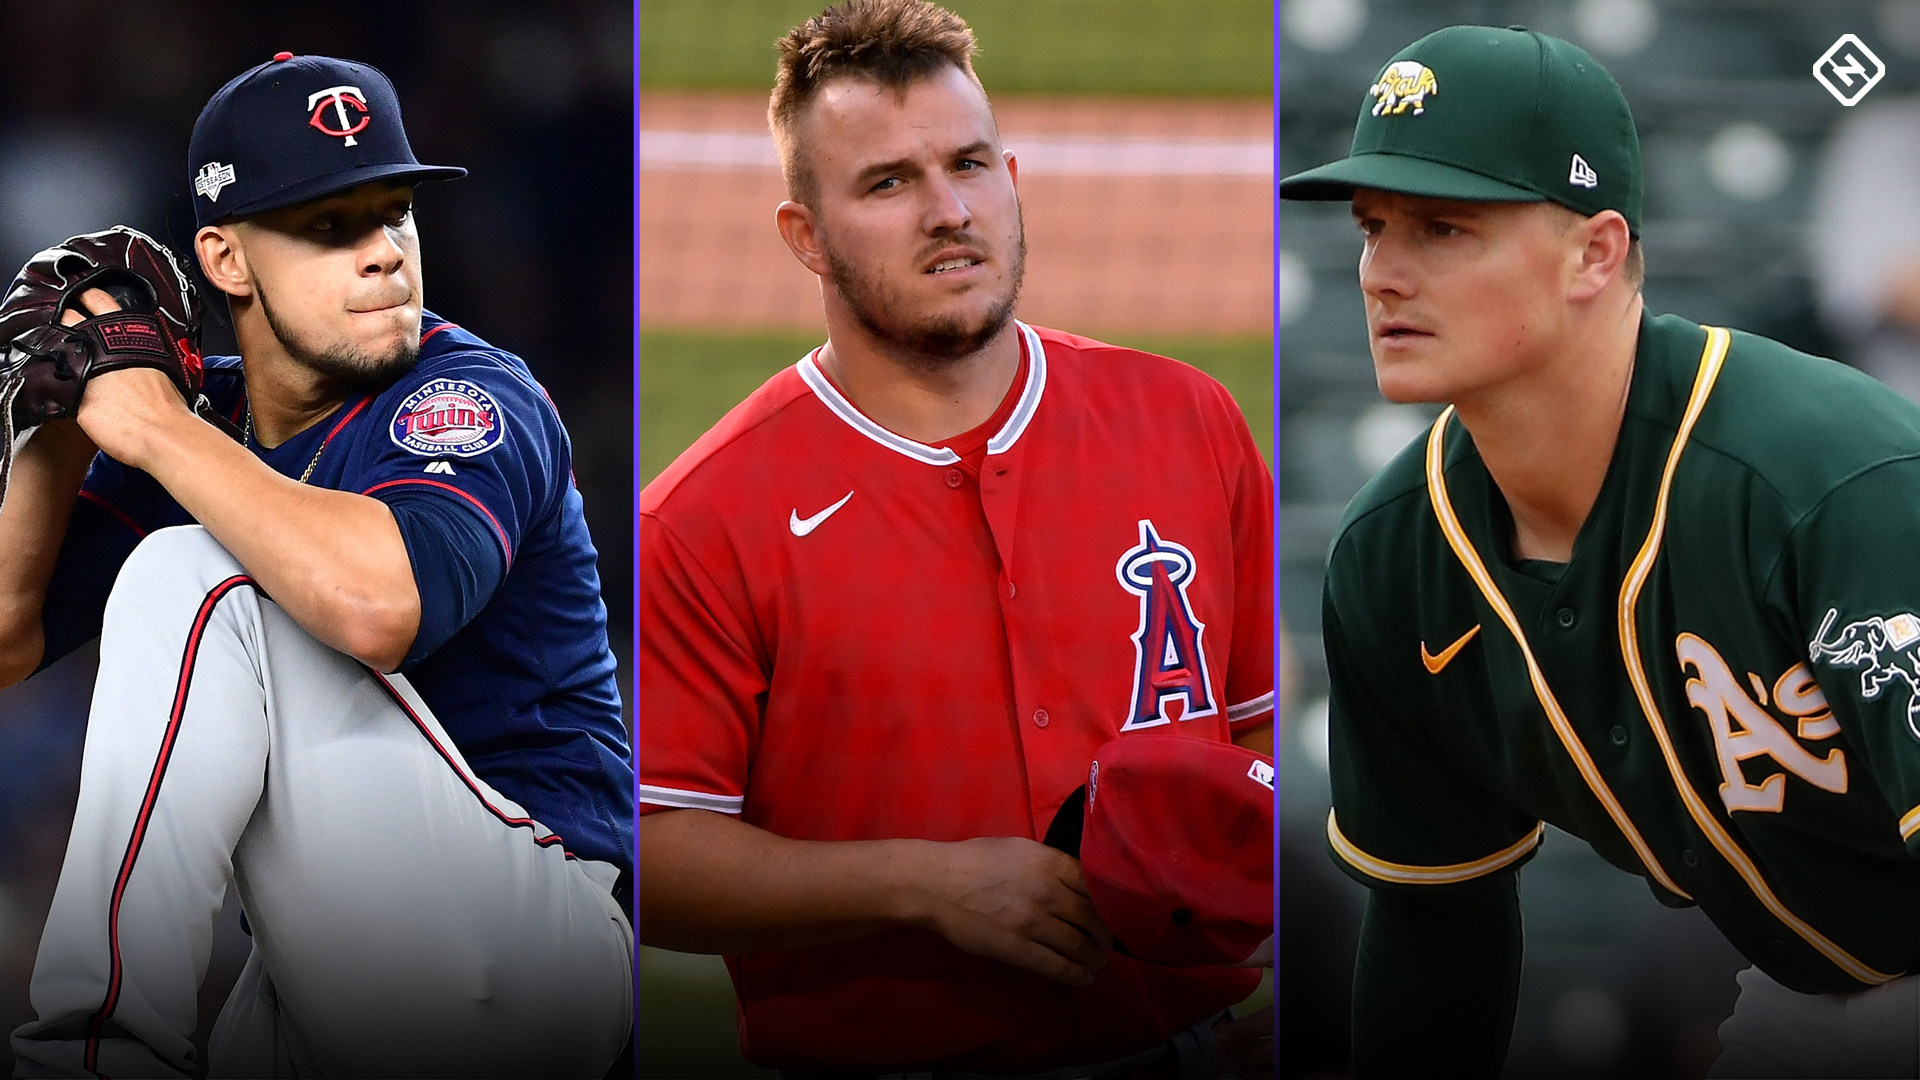 This Season in Baseball: The stars, storylines and stuff to watch in the 2020 MLB season 1